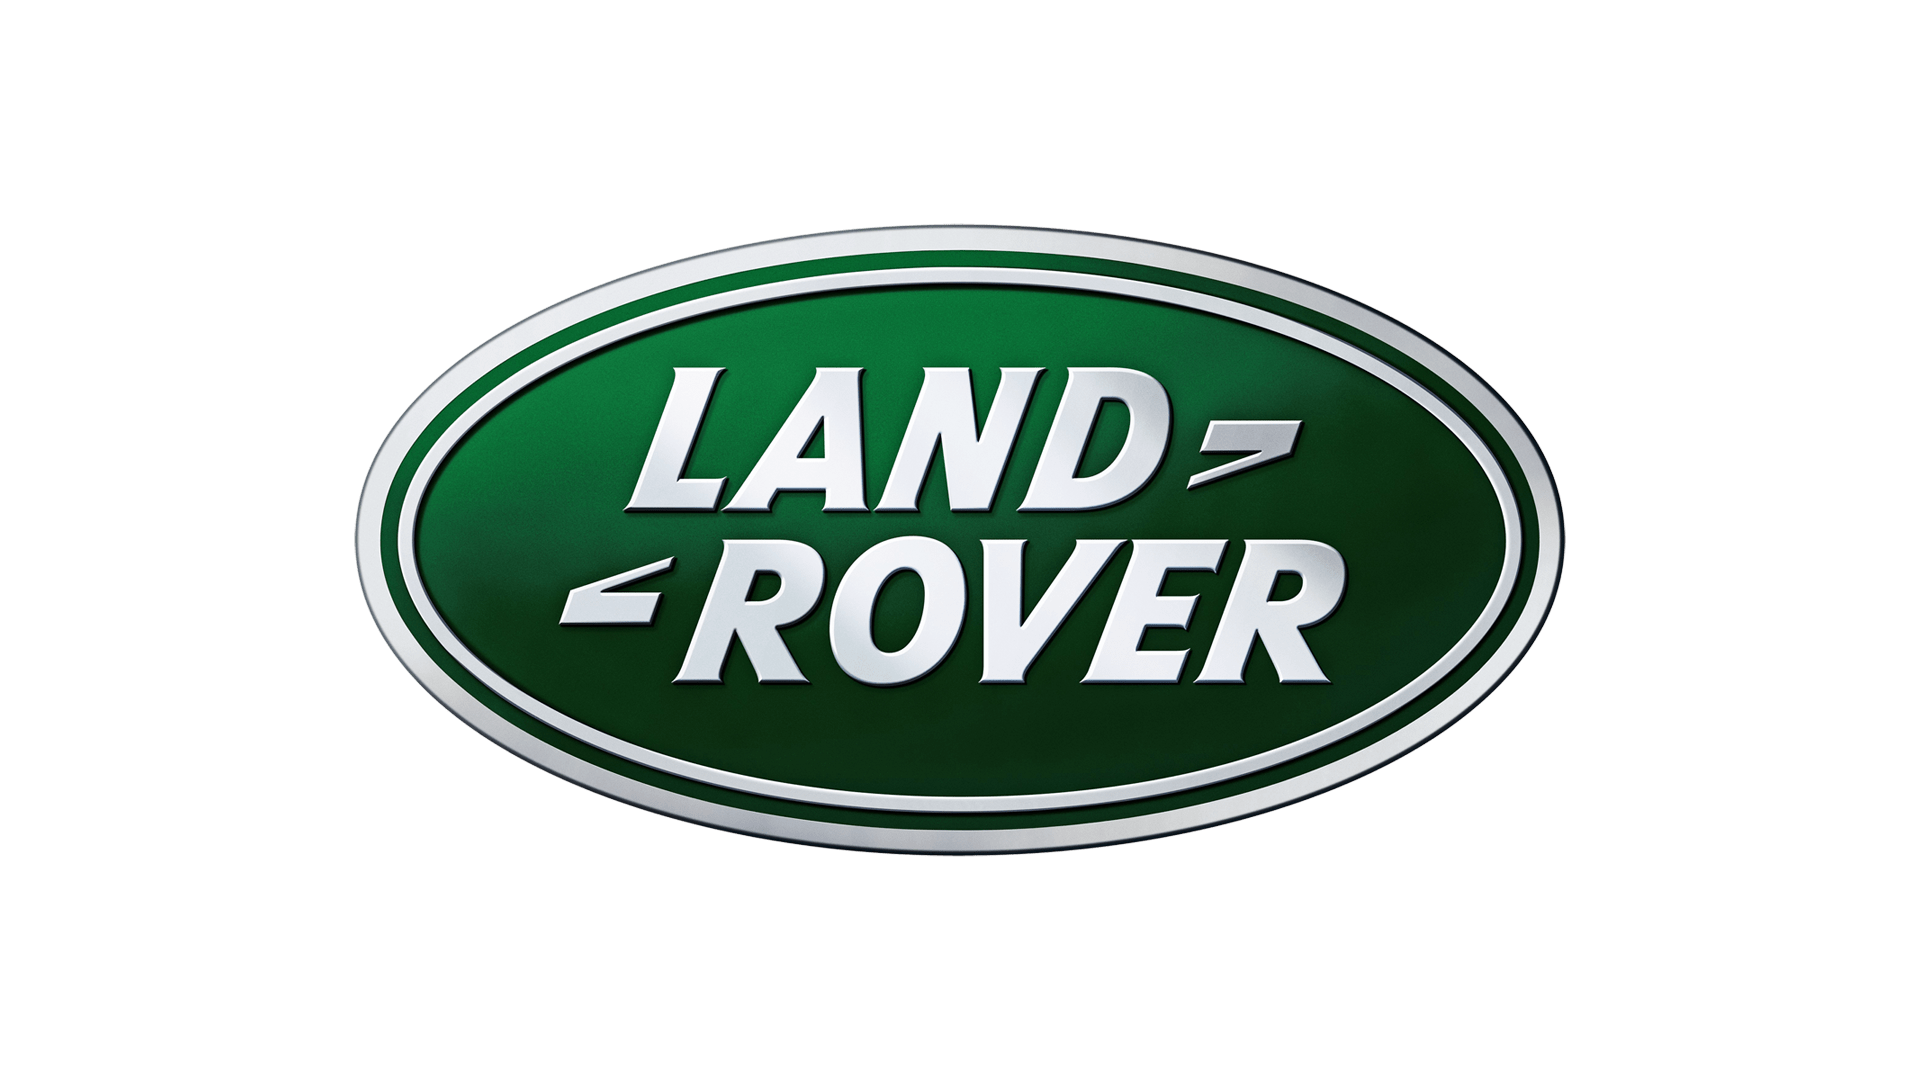 Automotive logo - Land Rover